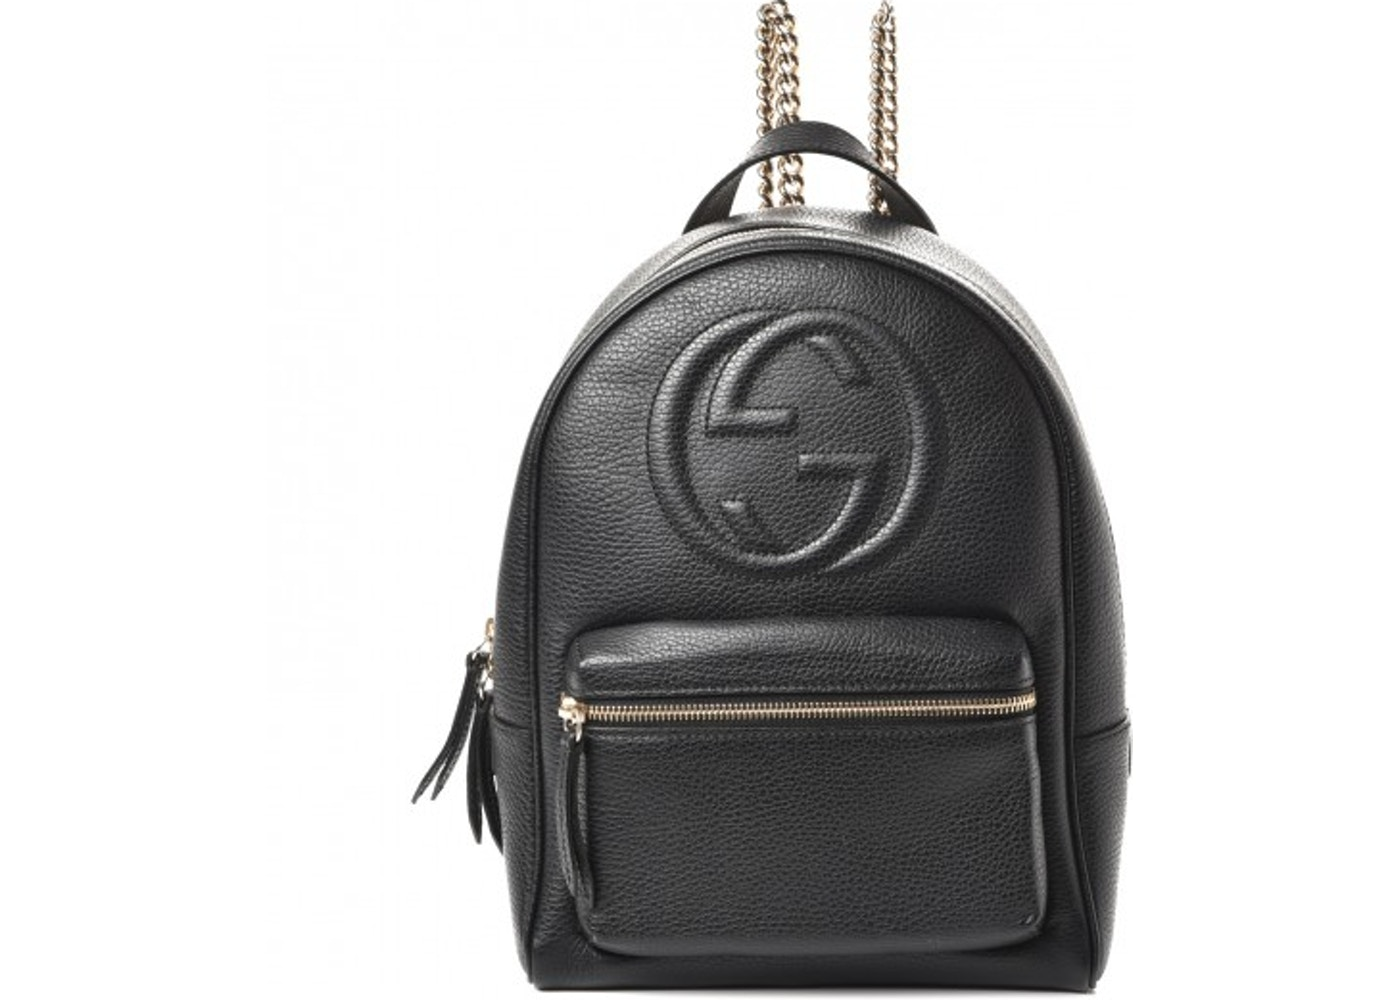 de872a96b Gucci Soho Chain Backpack Black. Black